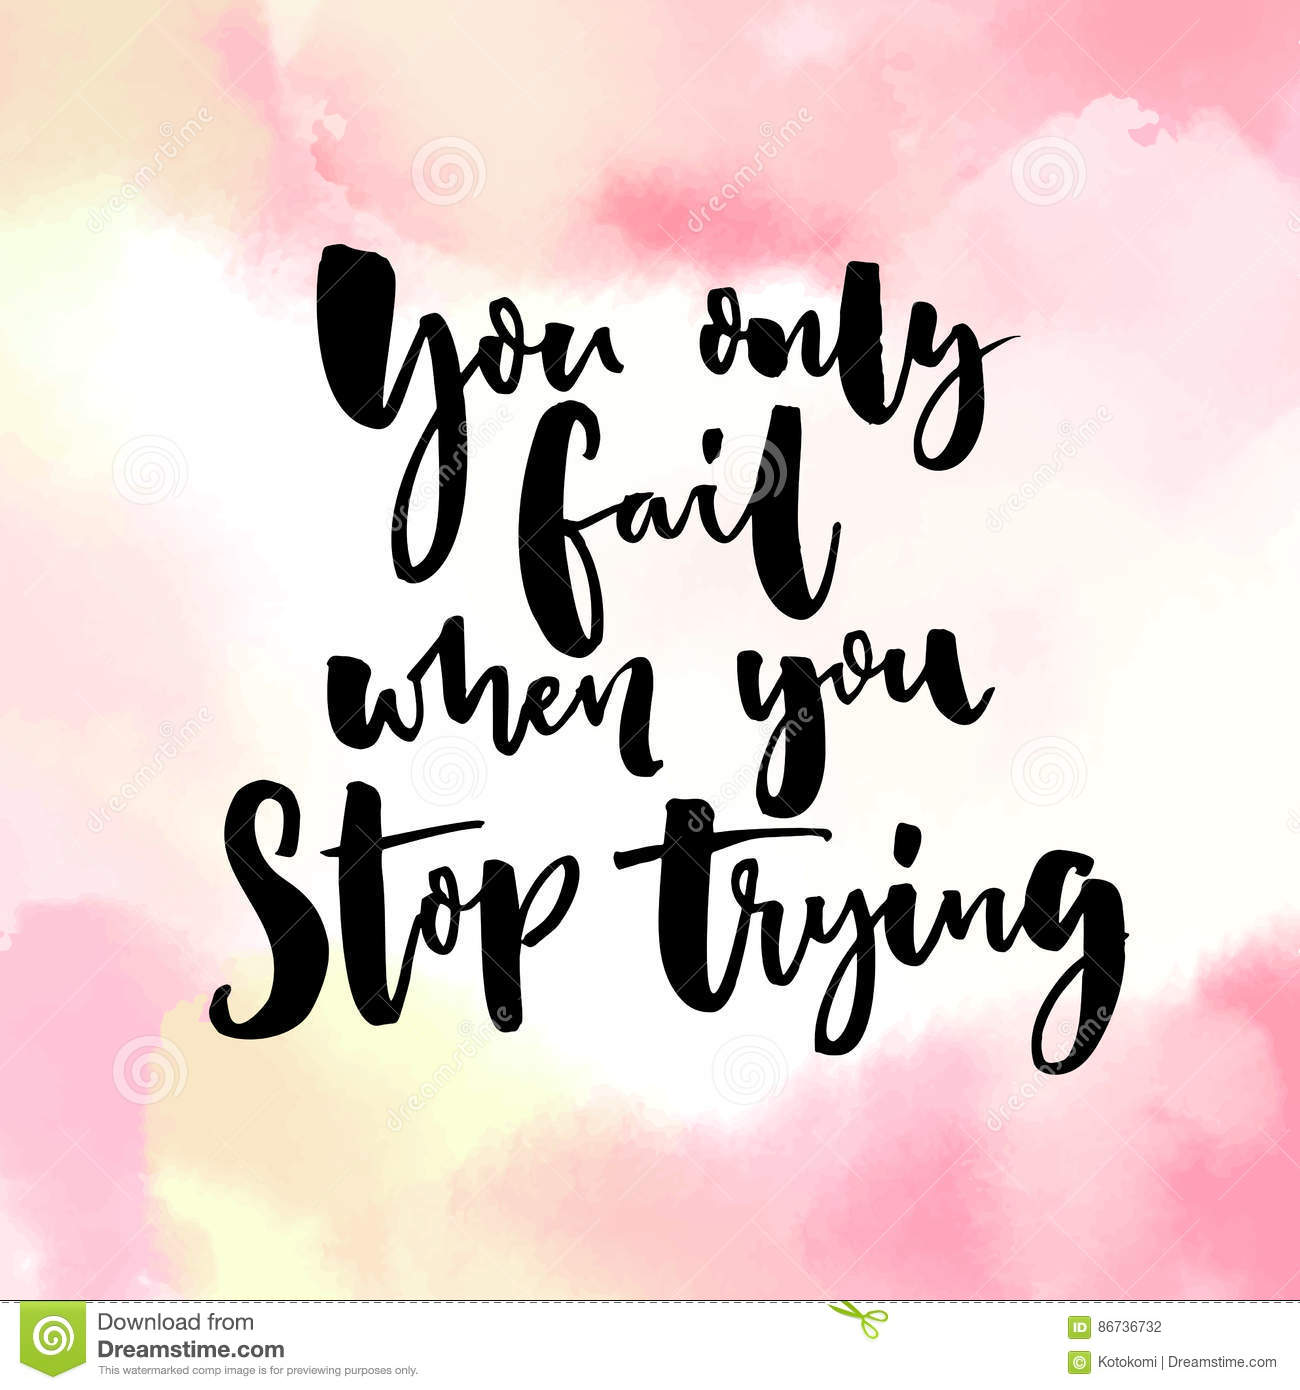 Inspirational Quotes About Failure: You Only Fail, When You Stop Trying. Motivational Quote